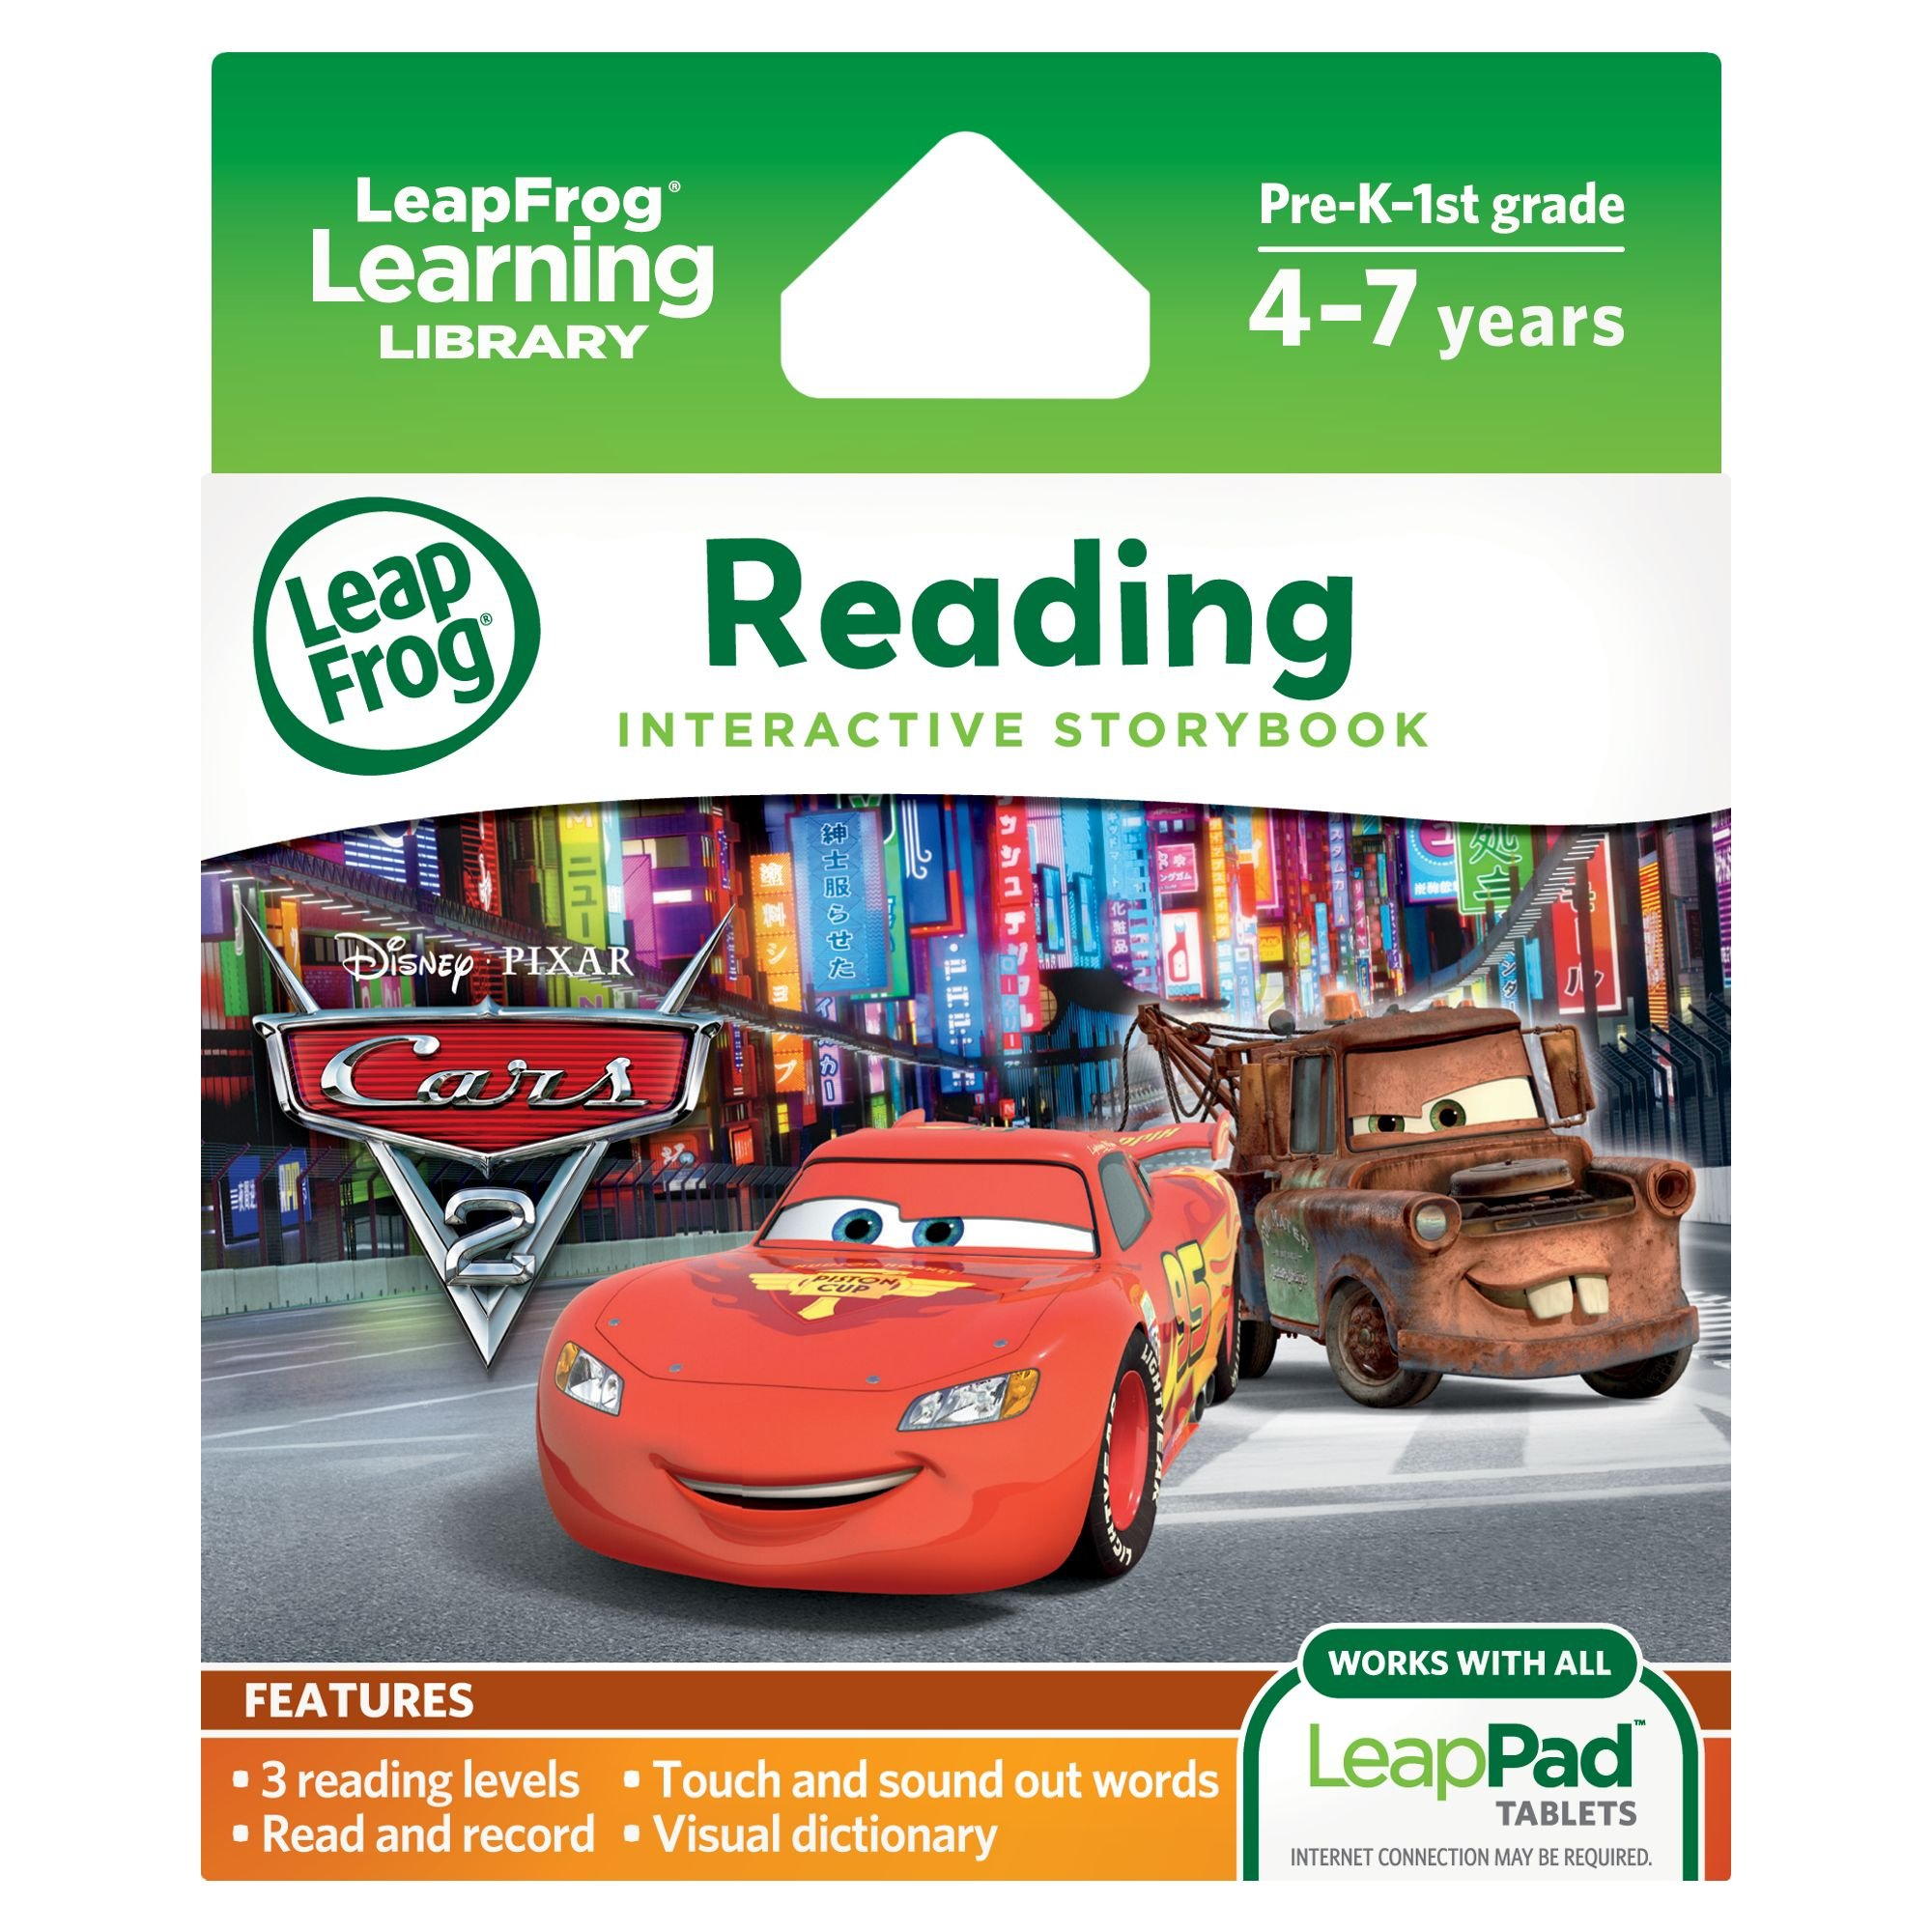 LeapFrog LeapPad Ultra eBook: Disney Pixar Cars 2 (works with all LeapPad Tablets) by LeapFrog (Image #1)